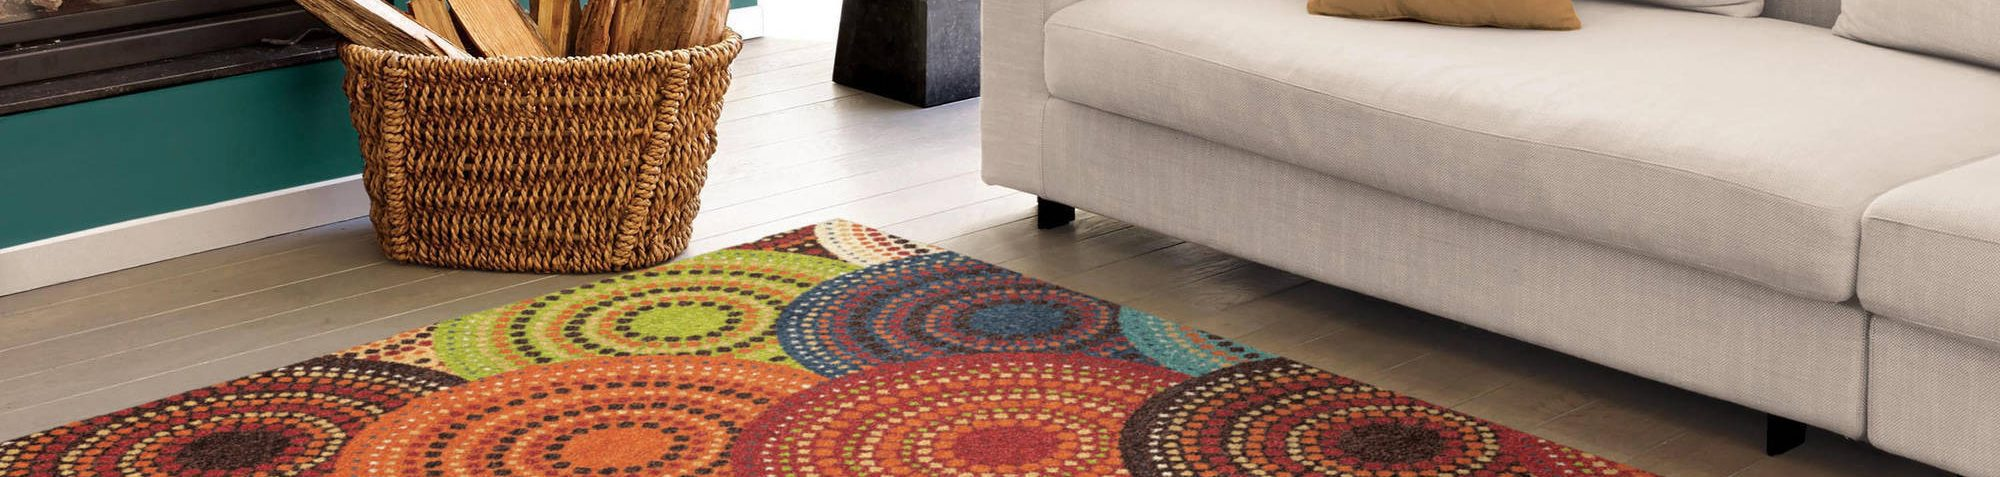 New York Rug Services